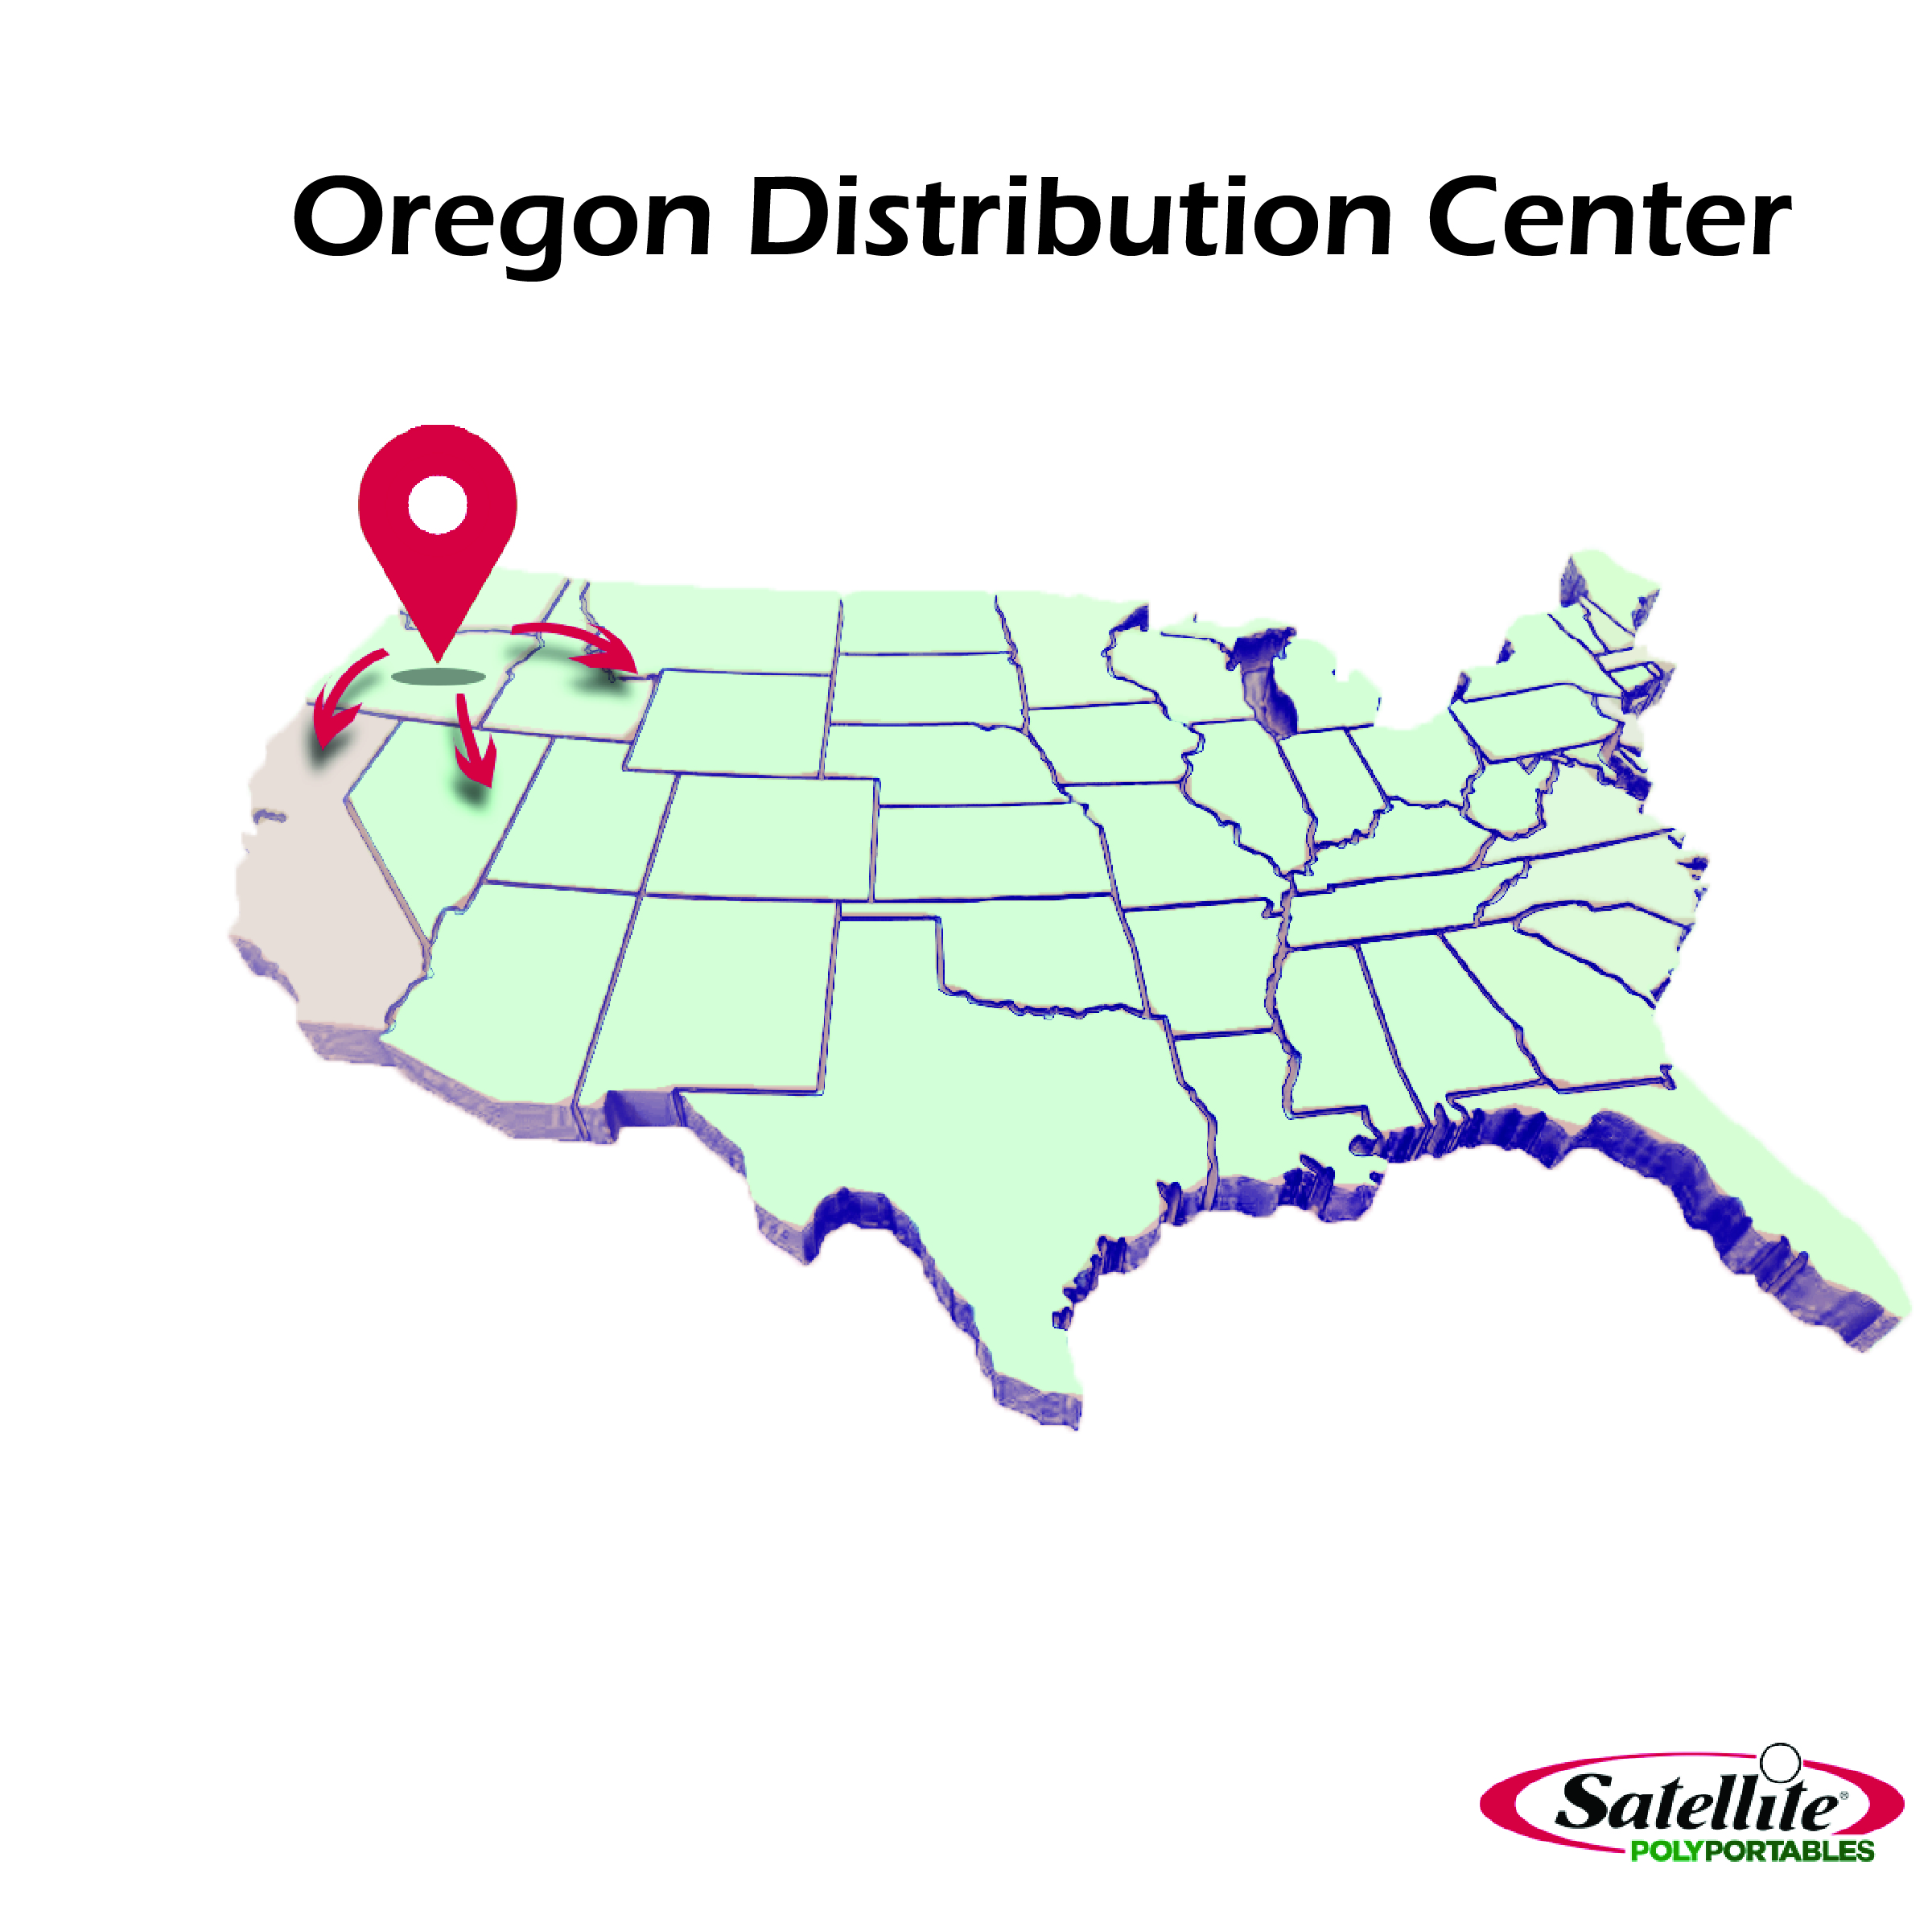 Oregon Distribution Center Featured Image